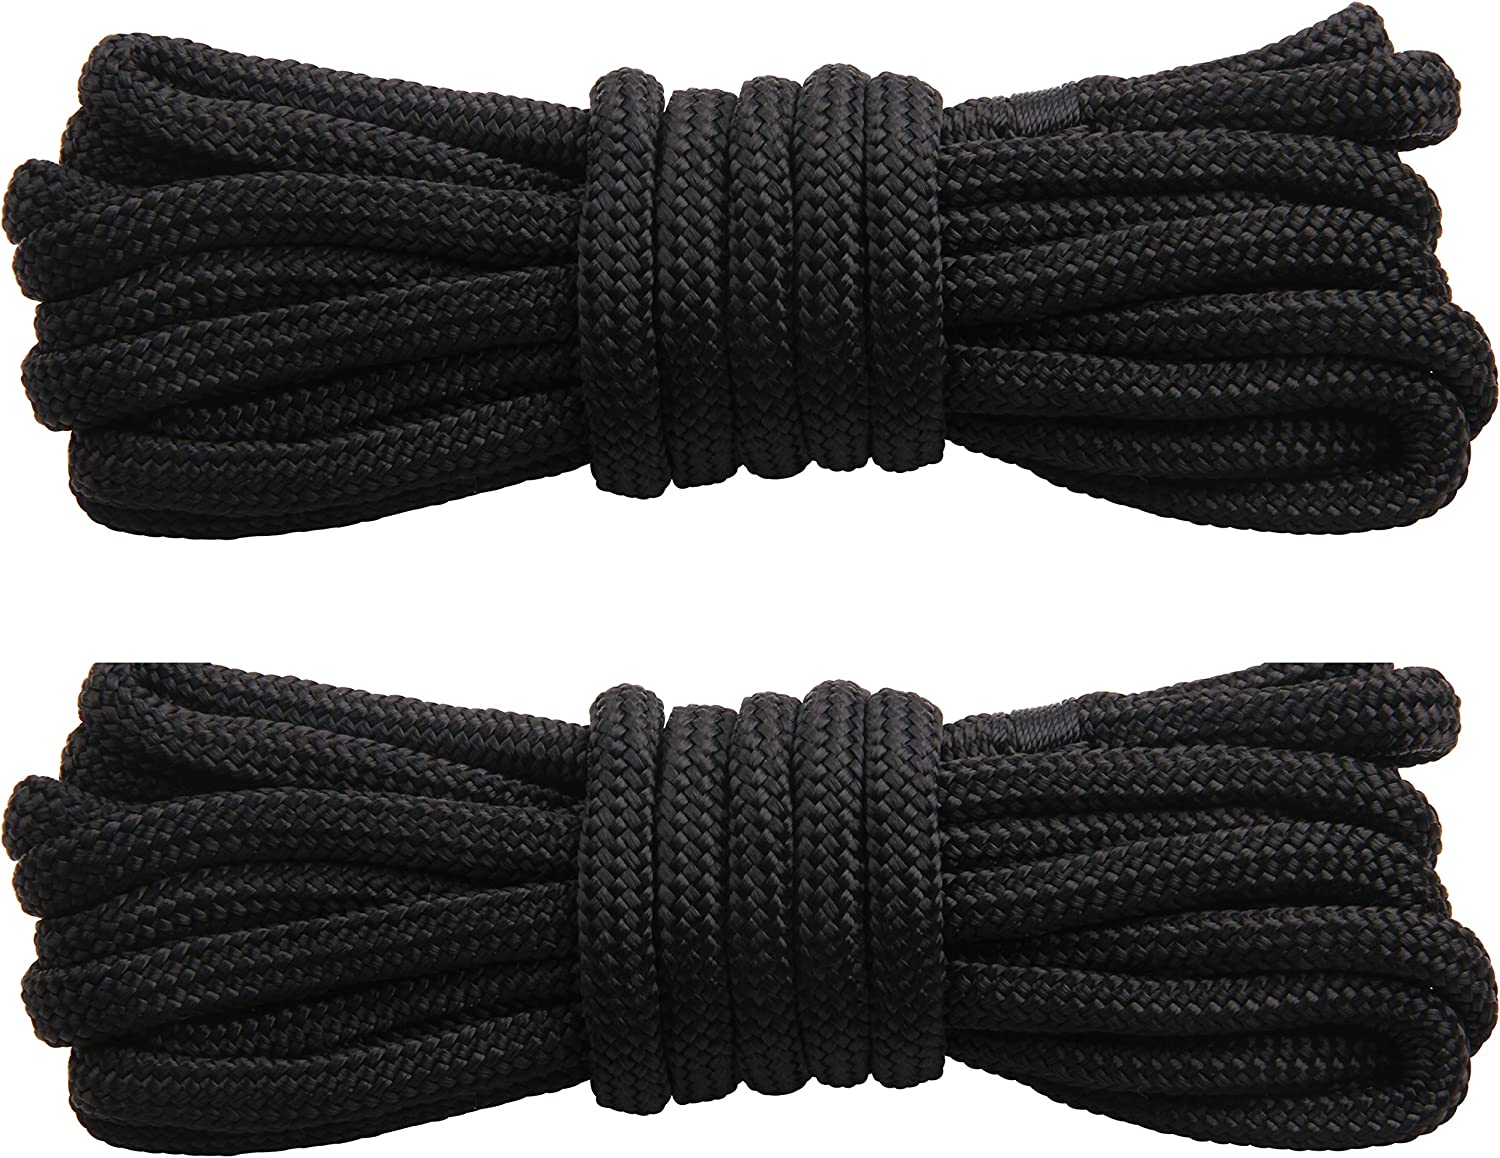 Boat Mooring Rope with 12 Inch Eyelet for Boats 25 FT,50 FT Shaddock Fishing Docking Lines Double-Braided Nylon Anchor Rope 1//2 Inch